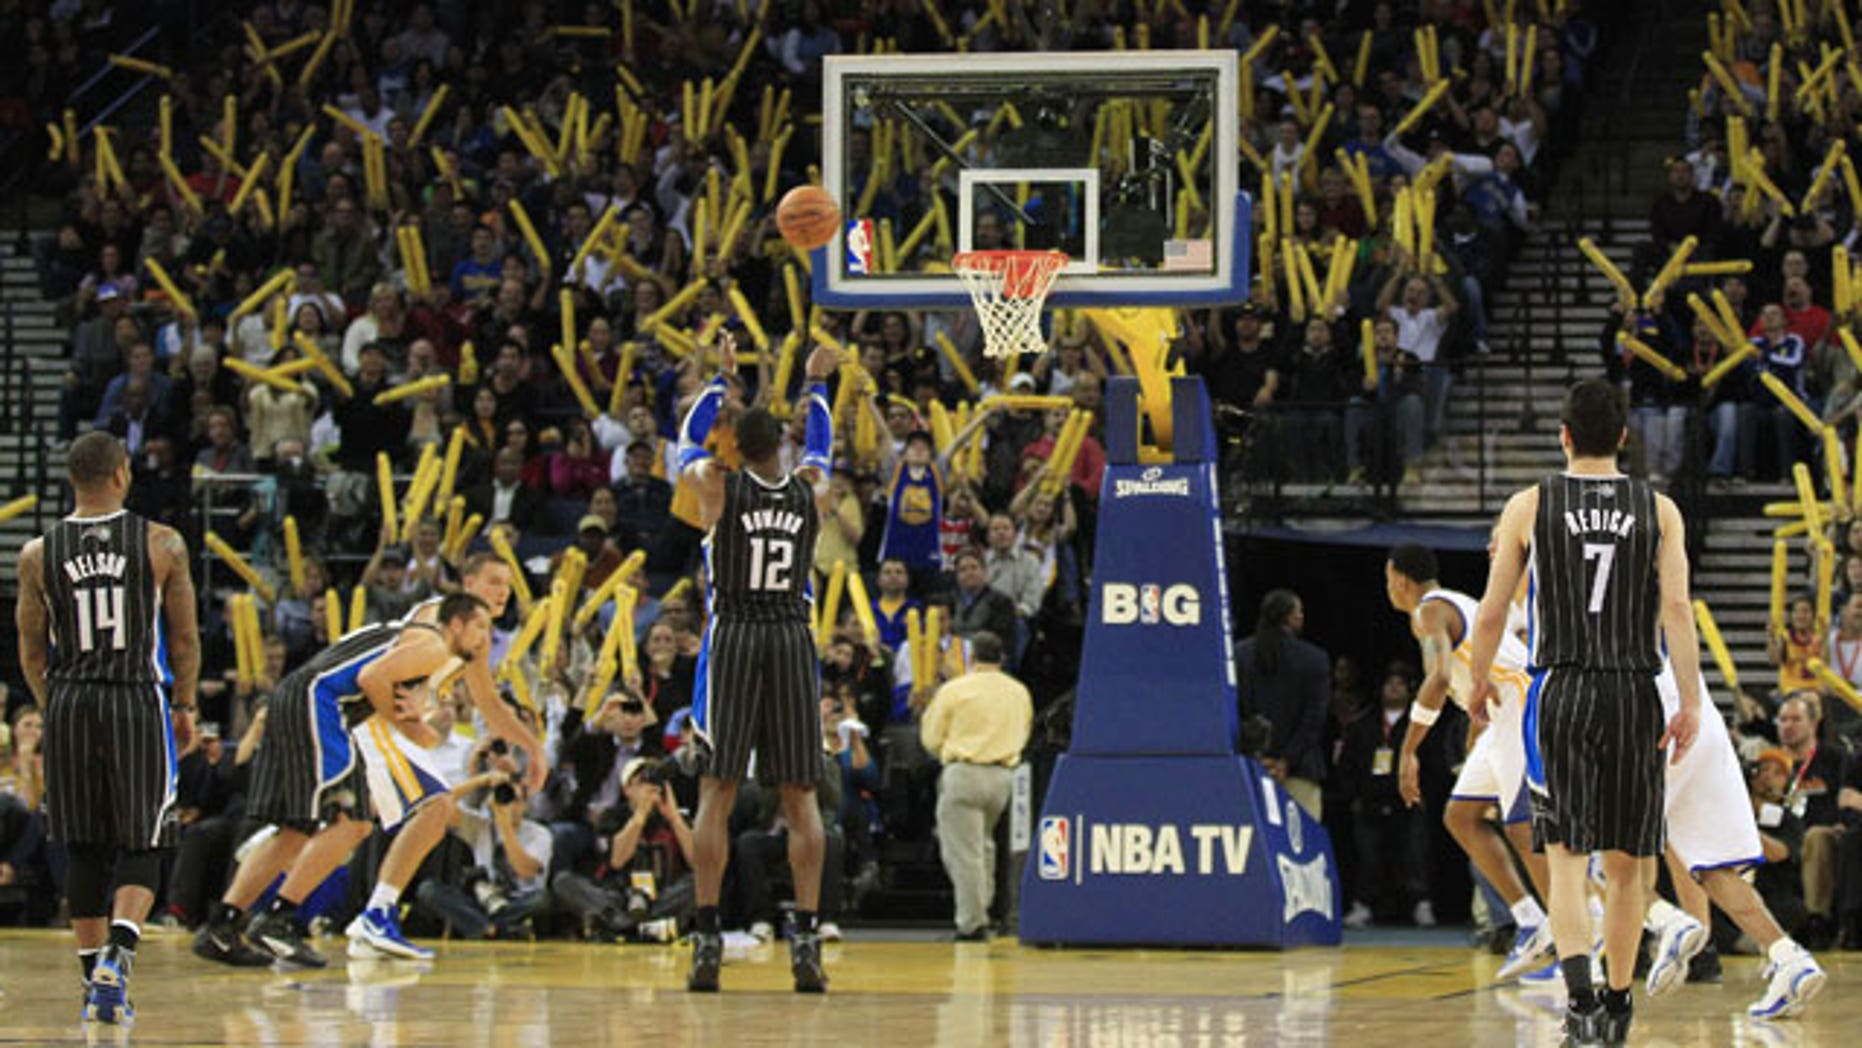 January 12, 2012: Orlando Magic's Dwight Howard (12) takes a free throw against the Golden State Warriors during the second half of an NBA basketball game in Oakland, Calif.